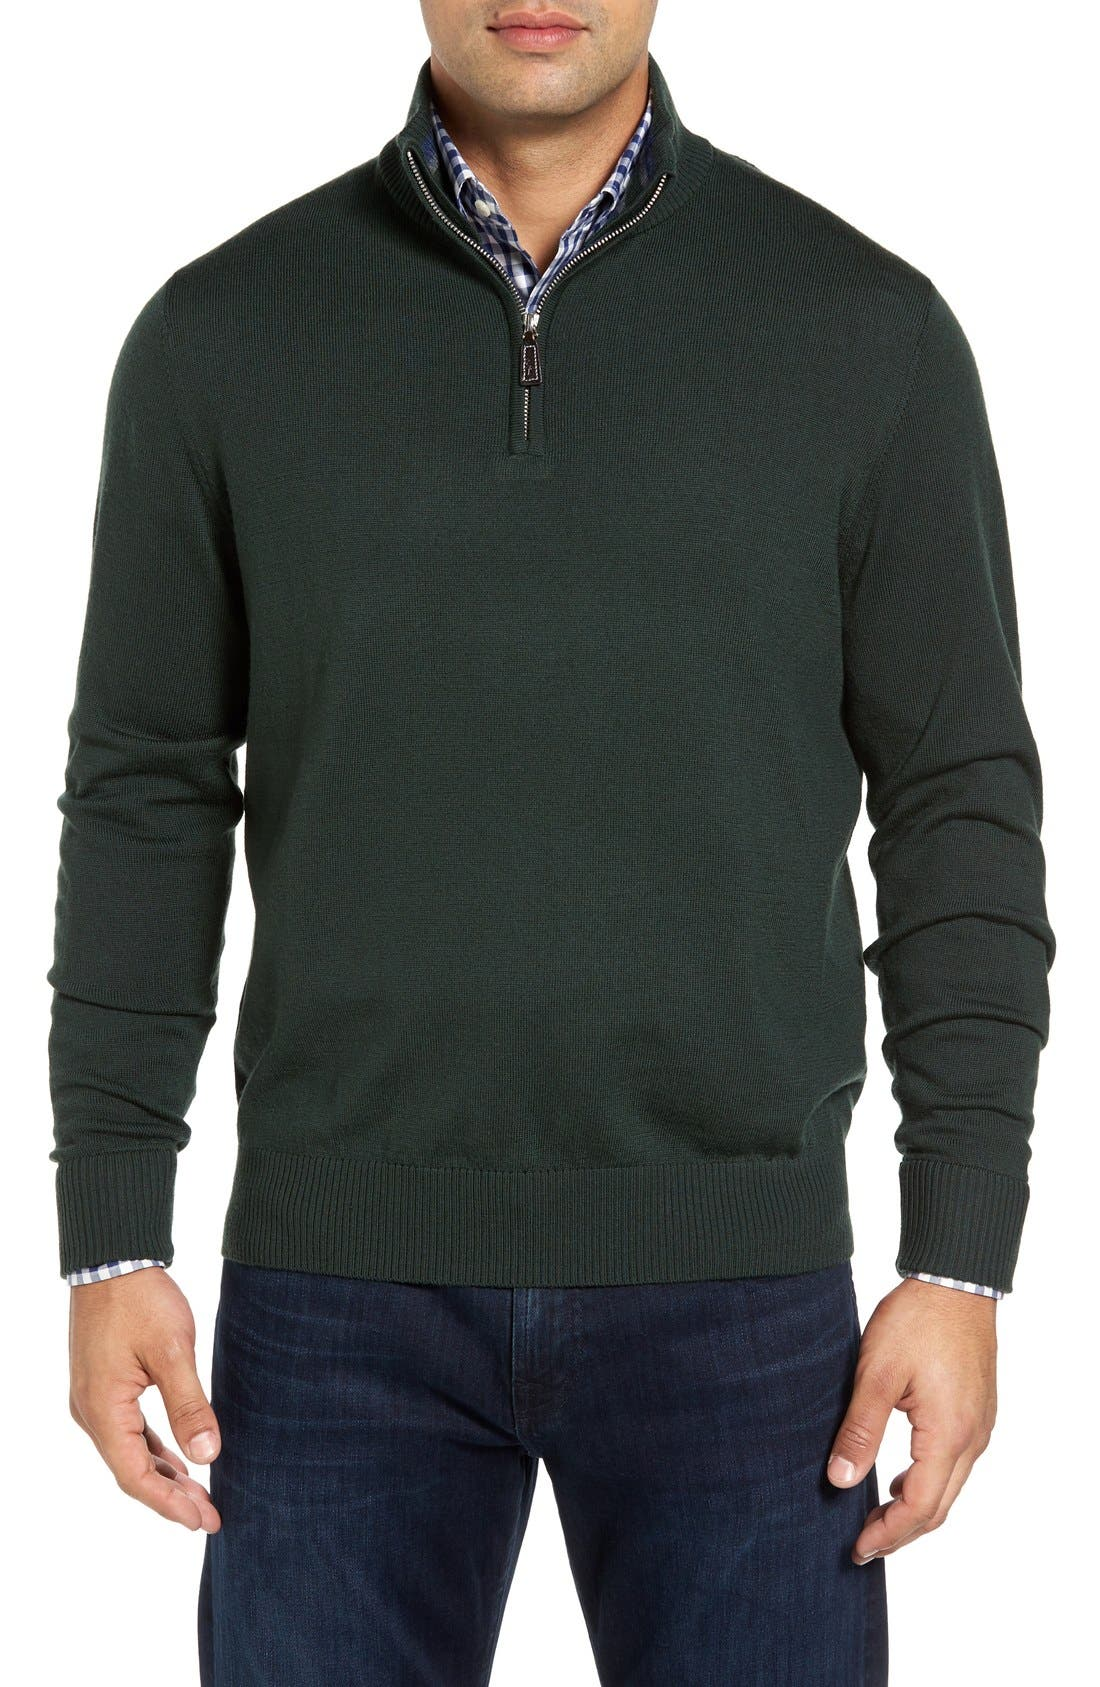 Main Image - TailorByrd S.Cascade Quarter Zip Wool Sweater